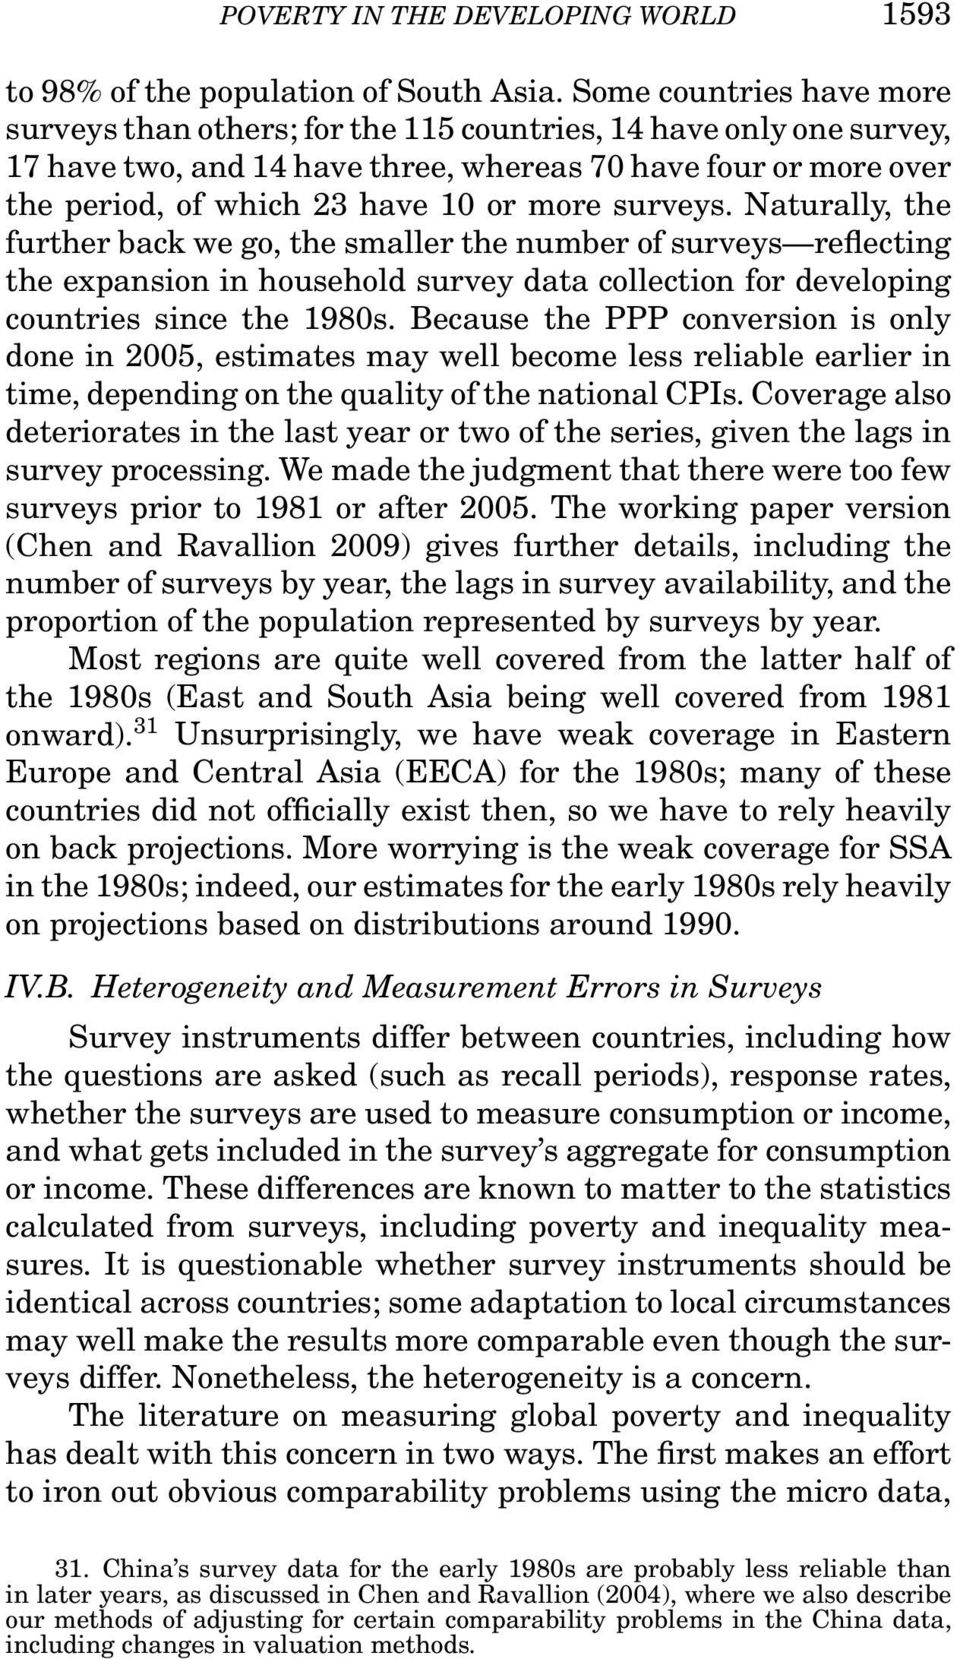 surveys. Naturally, the further back we go, the smaller the number of surveys reflecting the expansion in household survey data collection for developing countries since the 1980s.